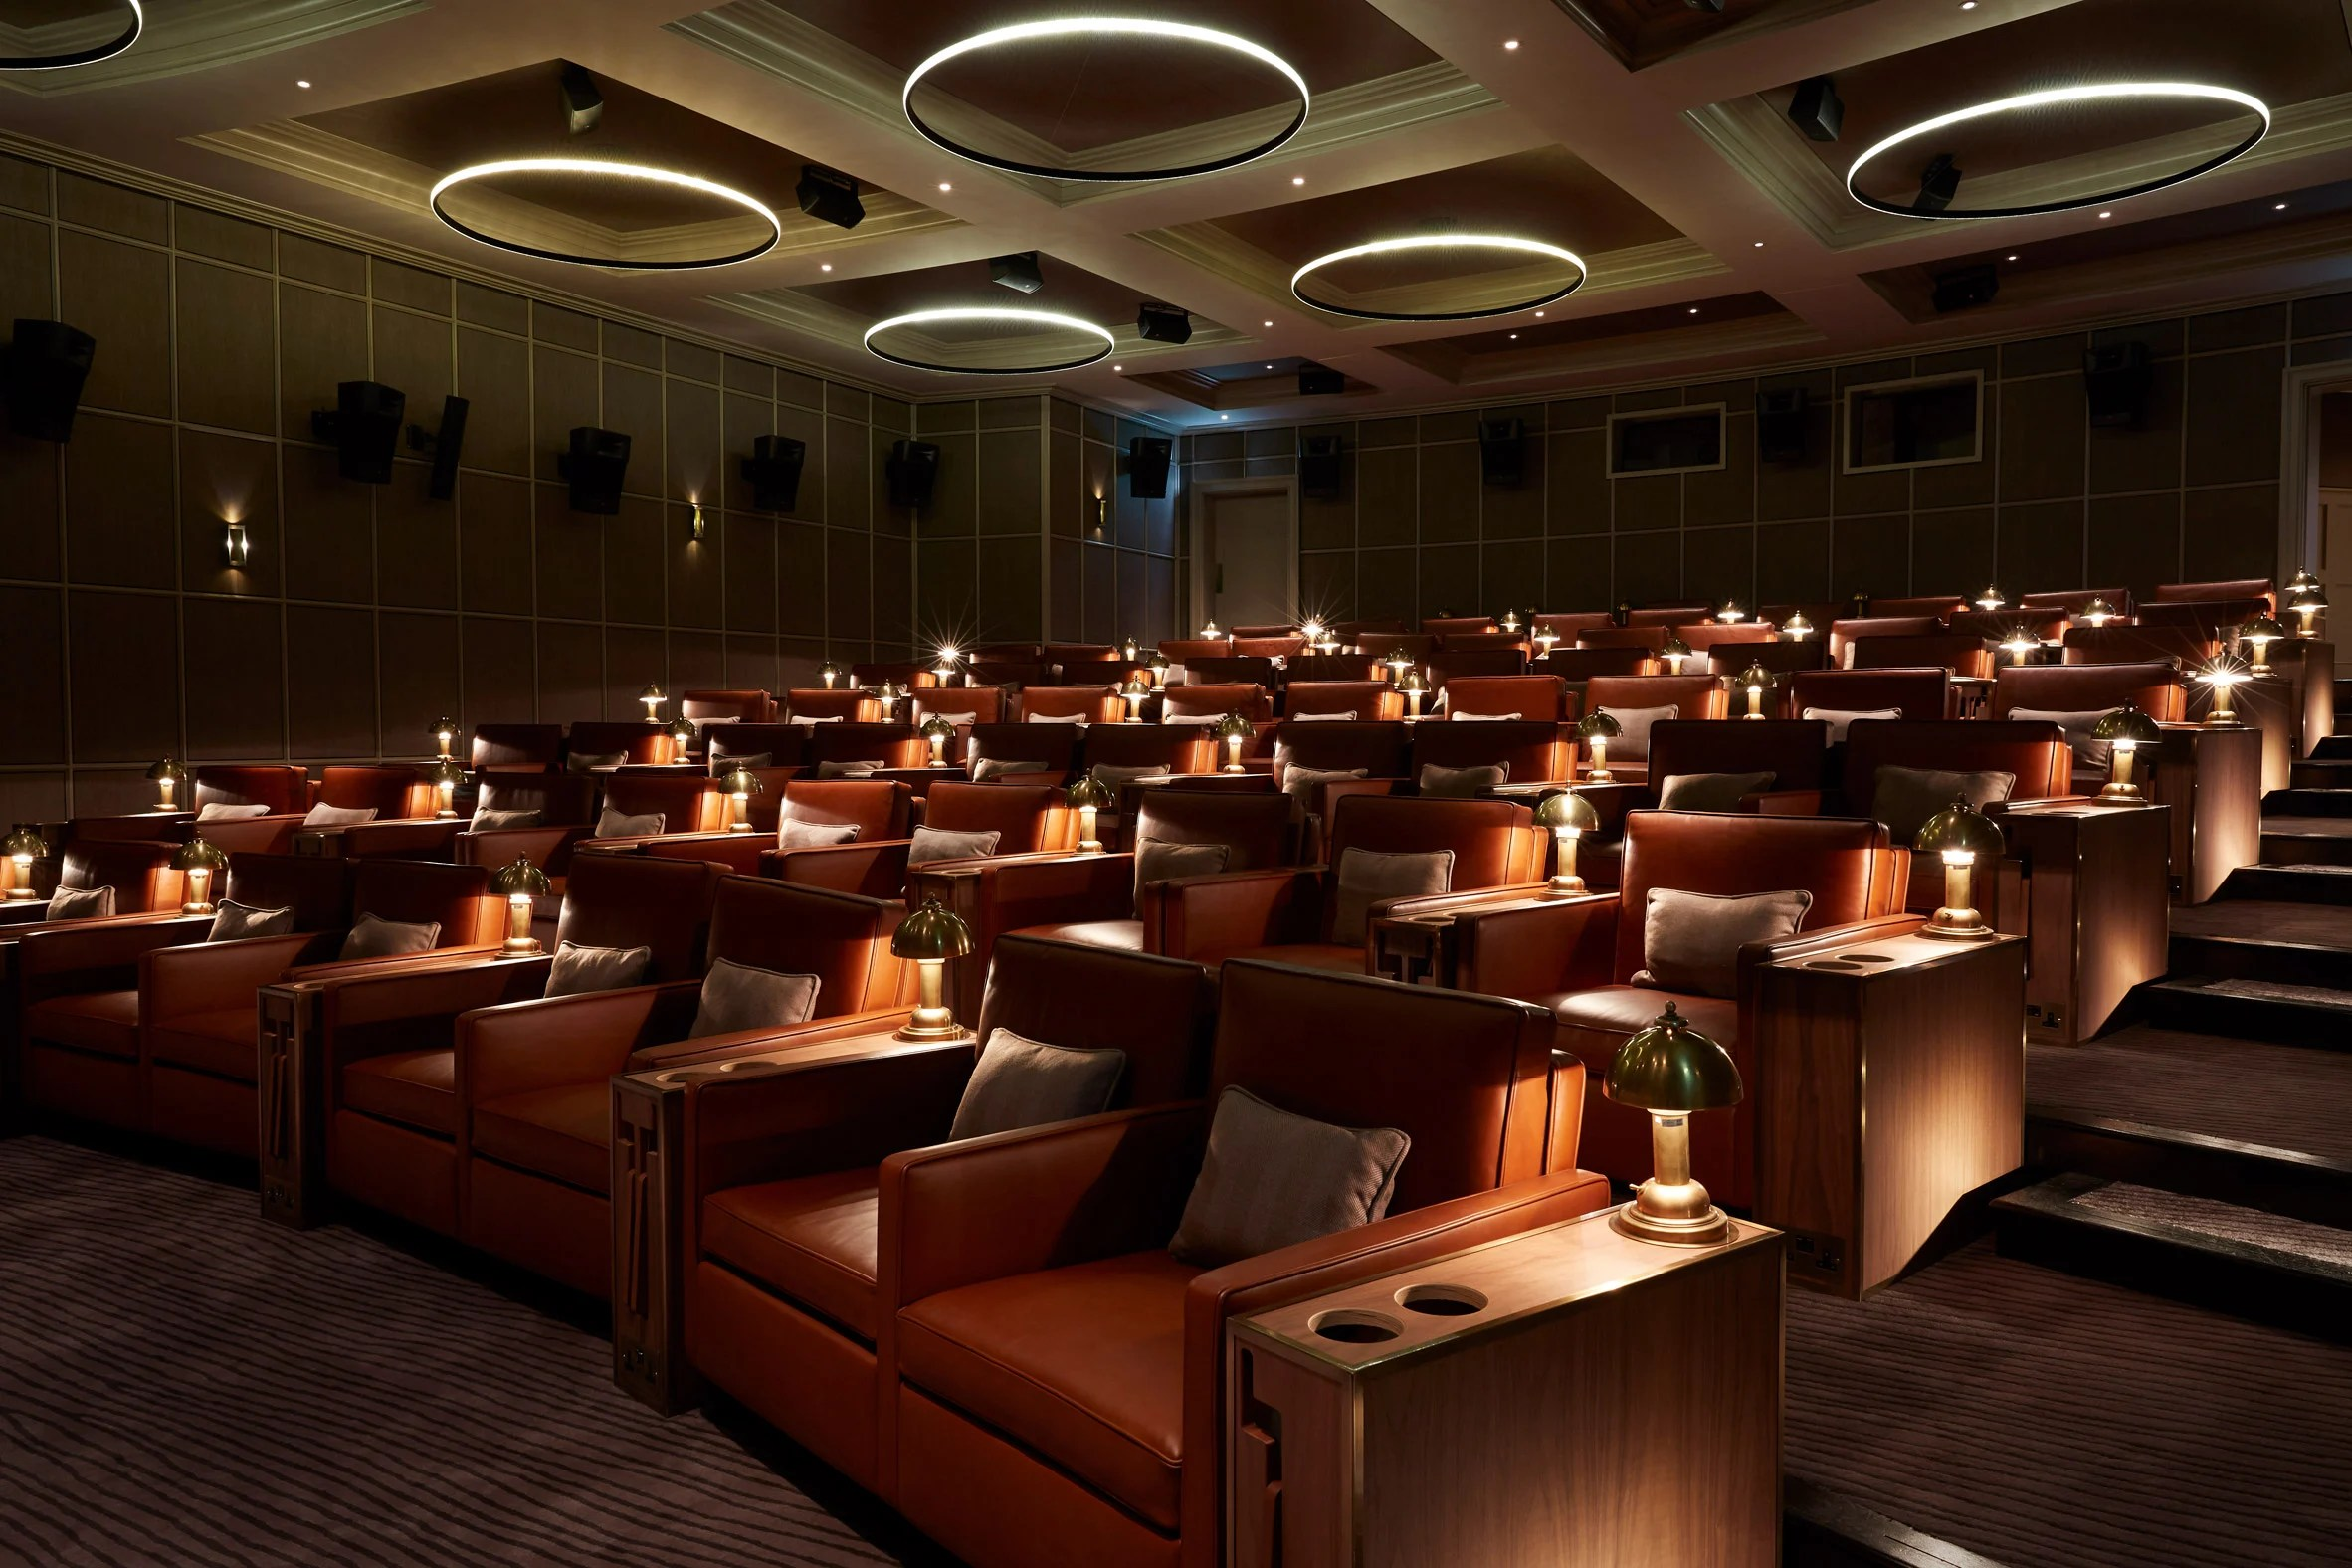 Cinema at Heckfield Place hotel by Ben Thompson